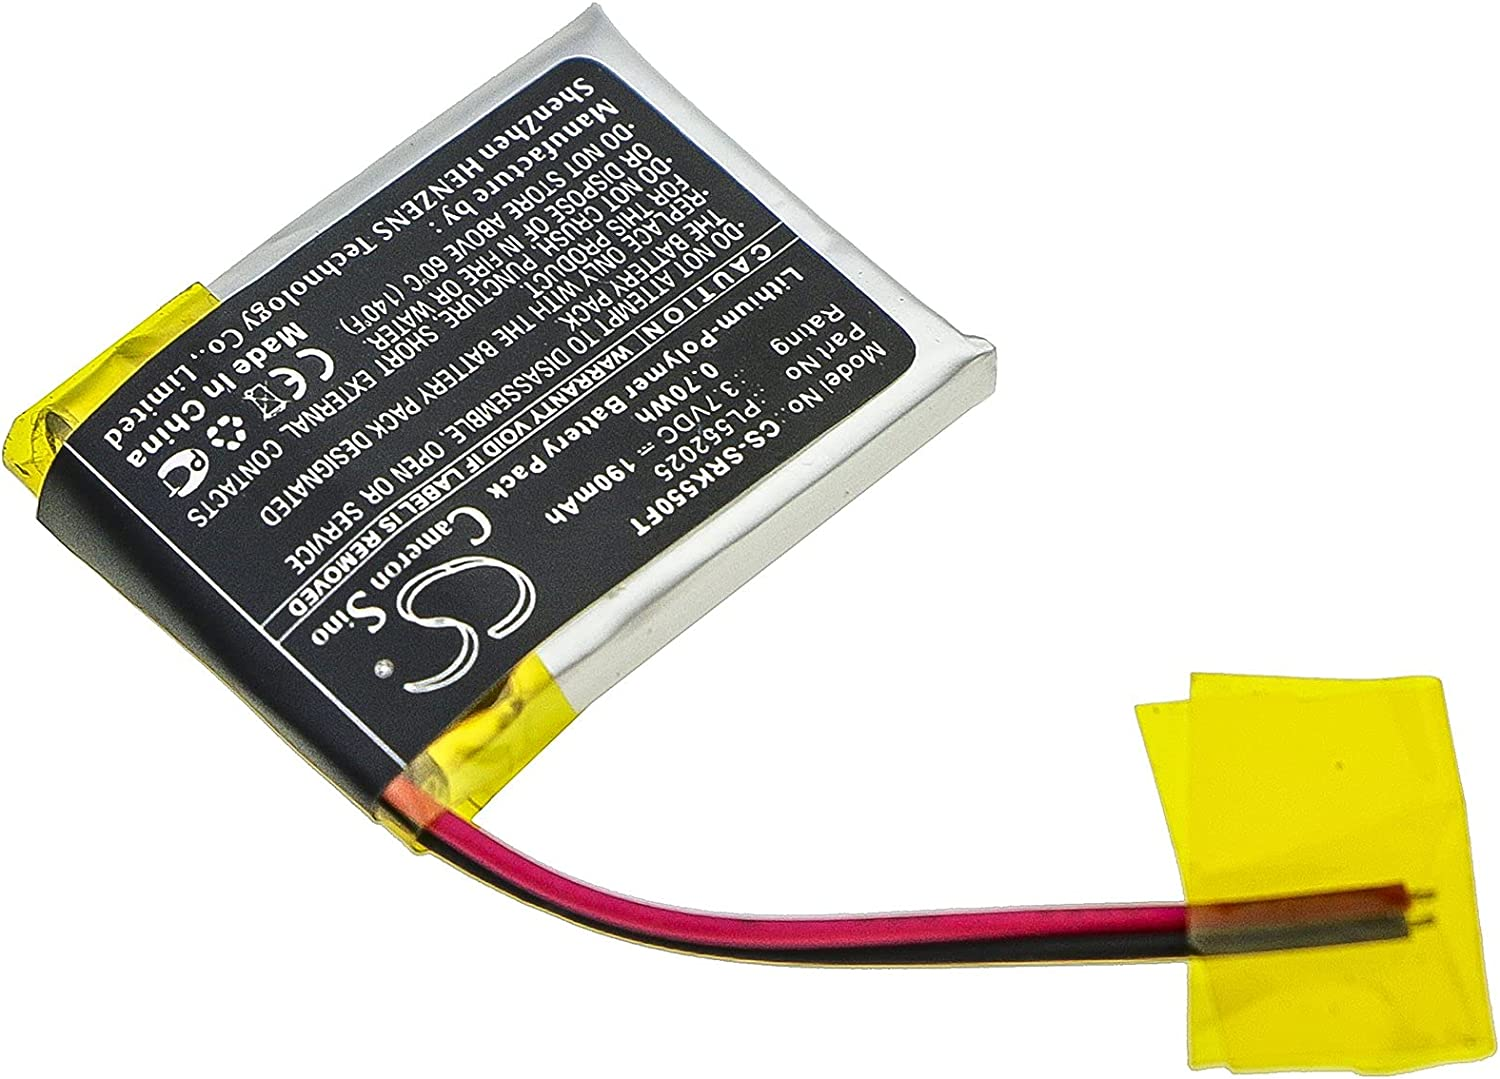 PL552025 Battery depot for Shark 550R Raleigh Mall - Sold by smavco 190mAh